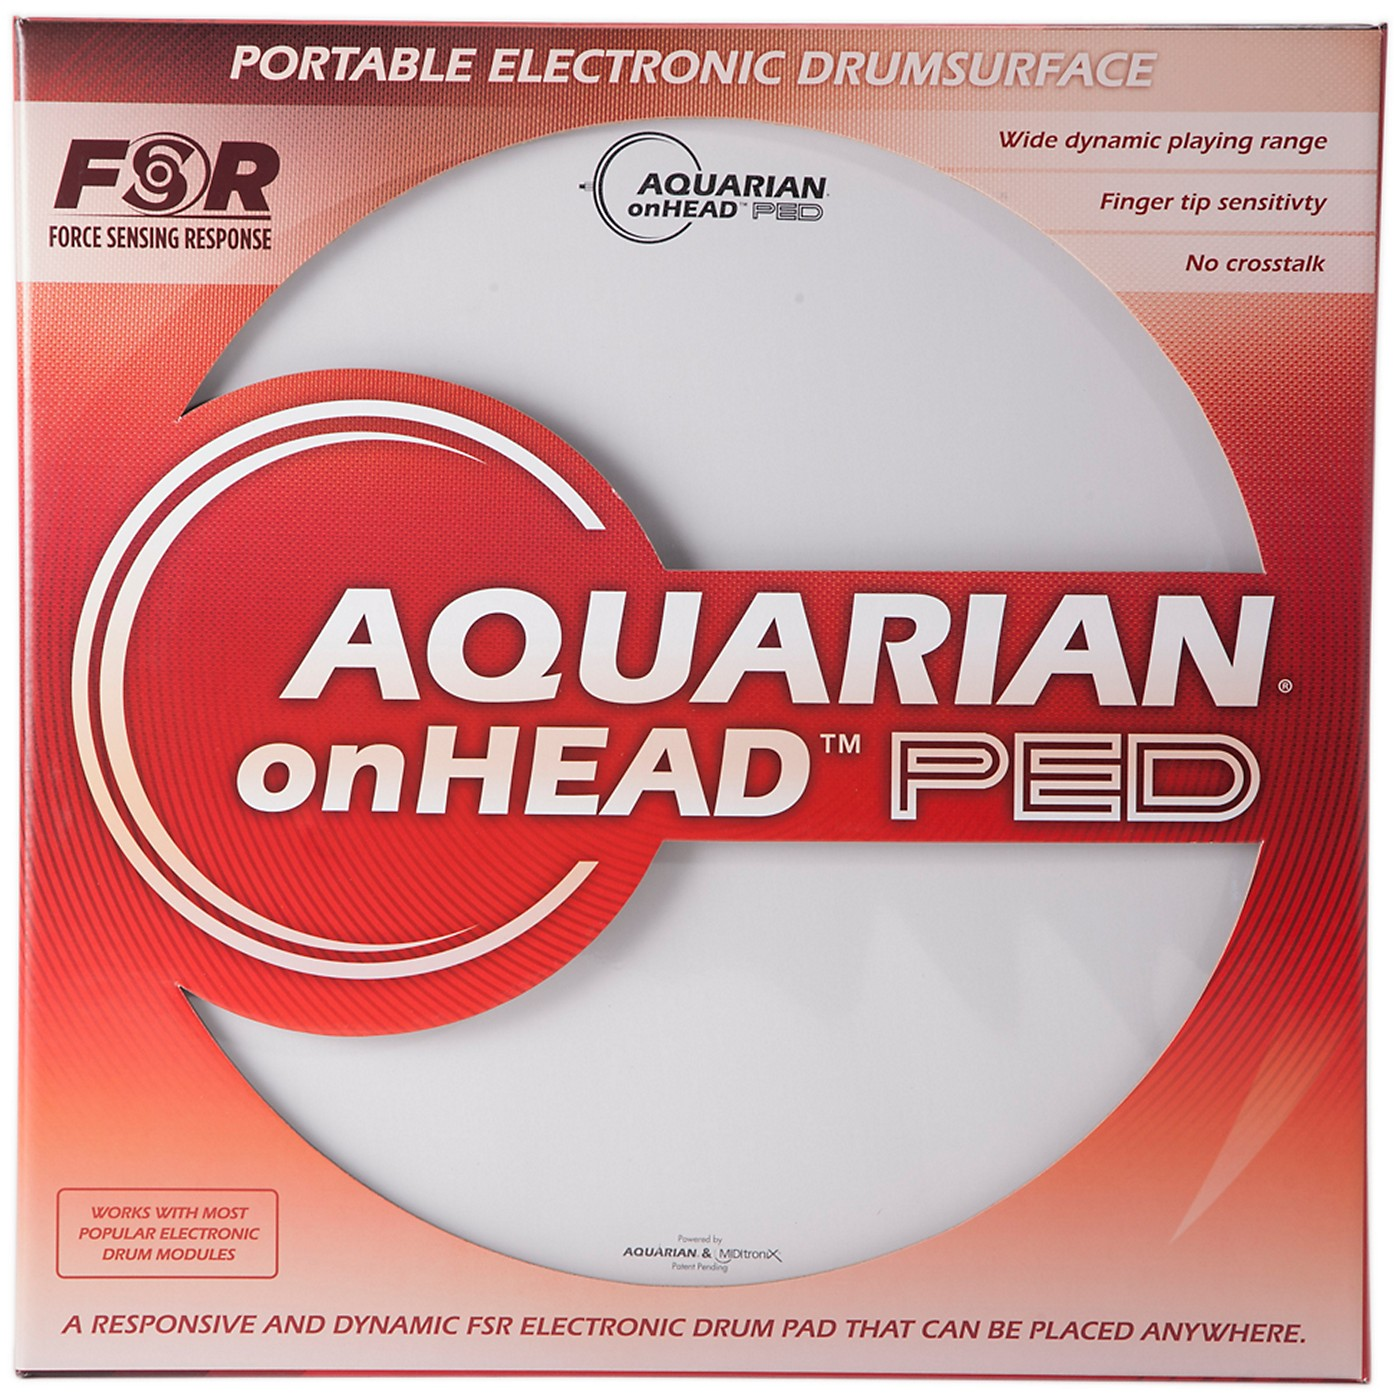 Aquarian onHEAD Portable Electronic Drumsurface thumbnail